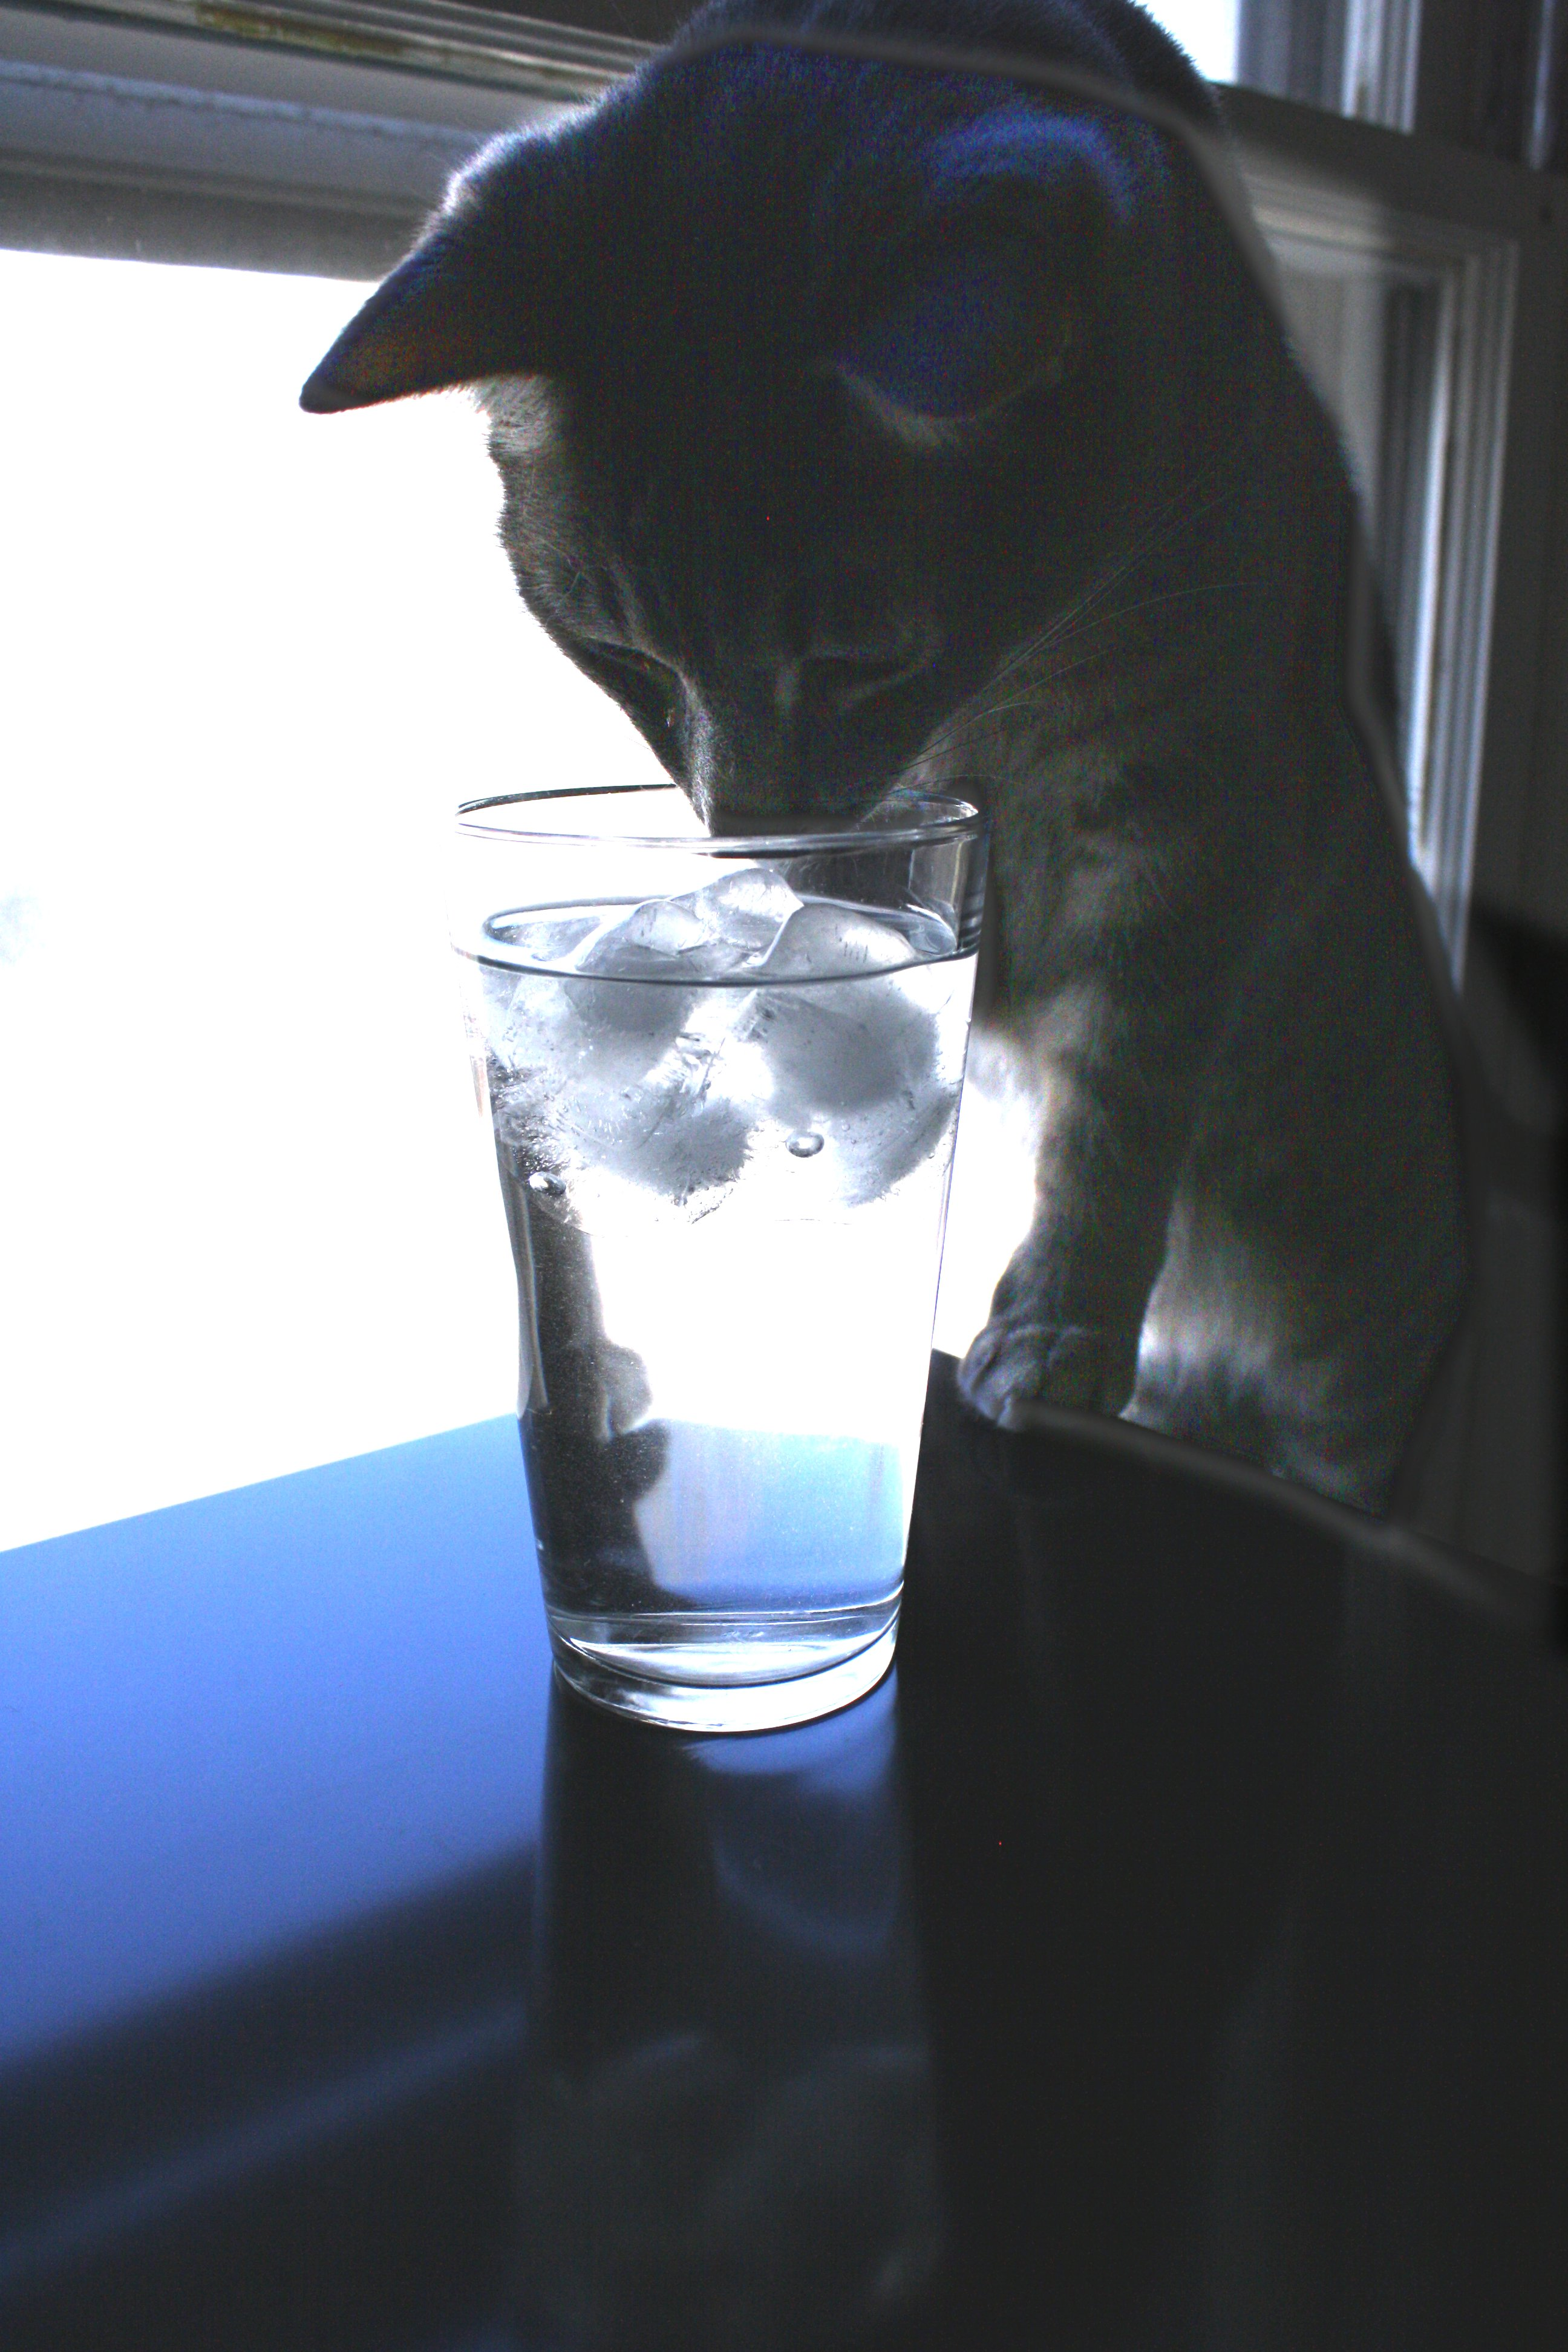 Cat Peering Into Glass Of Water Picture Free Photograph